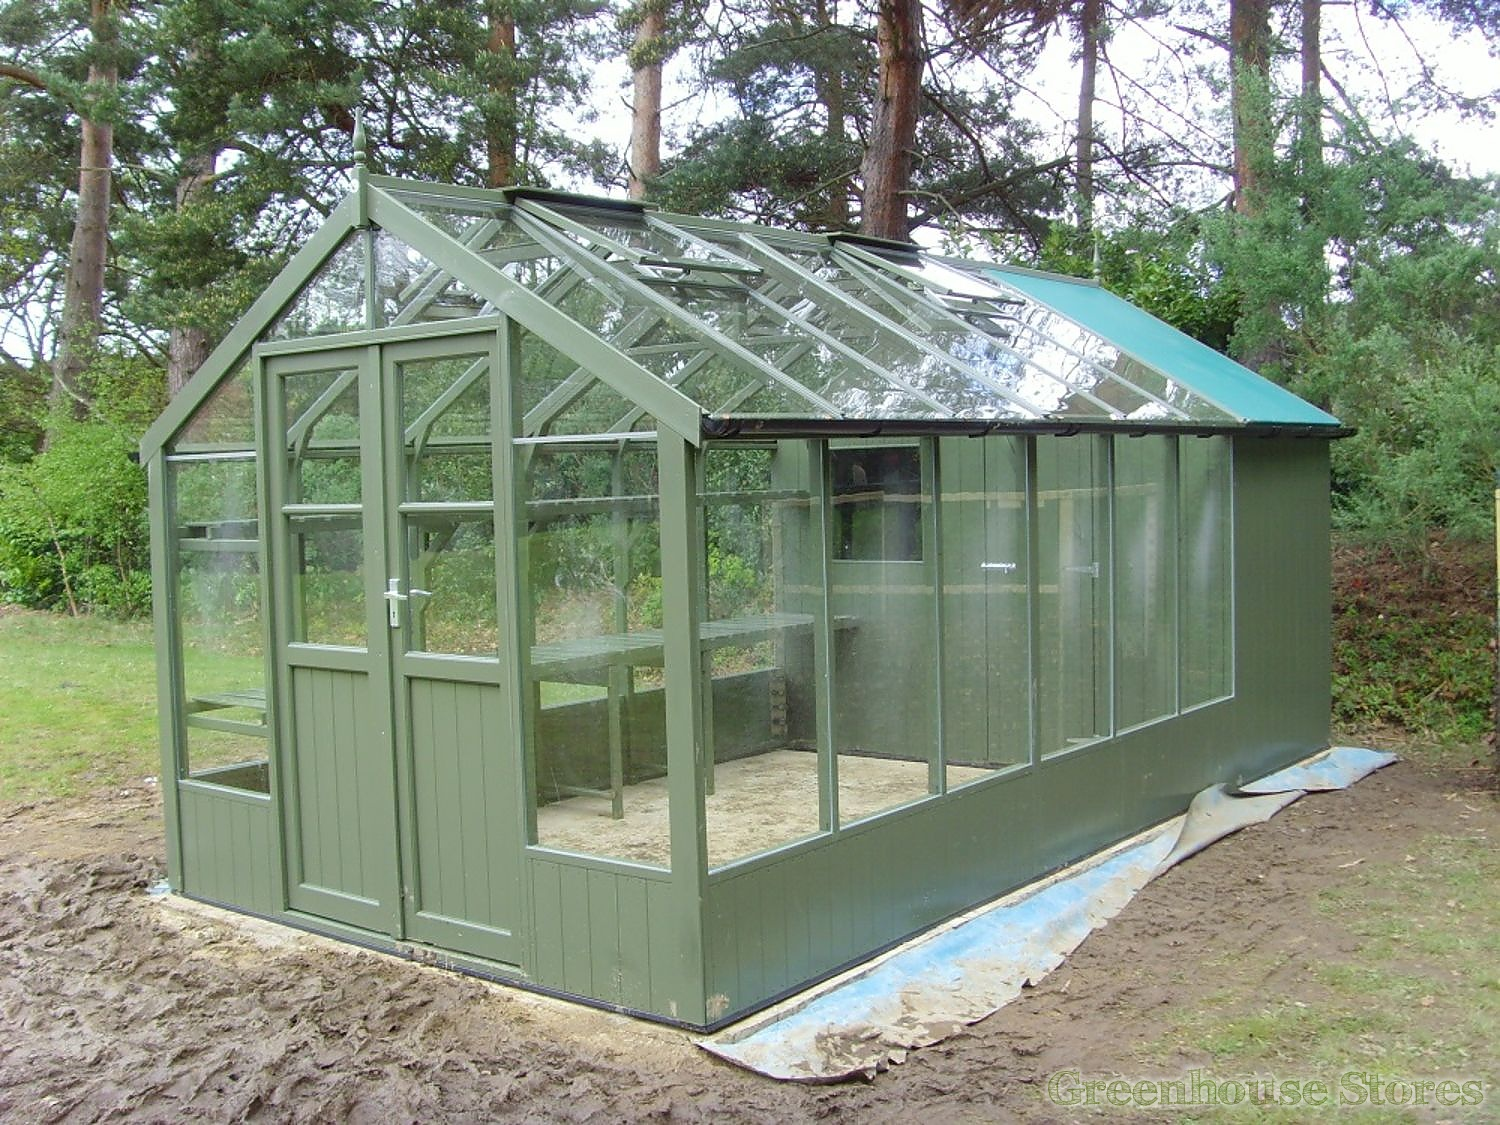 Swallow raven 8x12 wooden greenhouse greenhouse stores Green house sheds